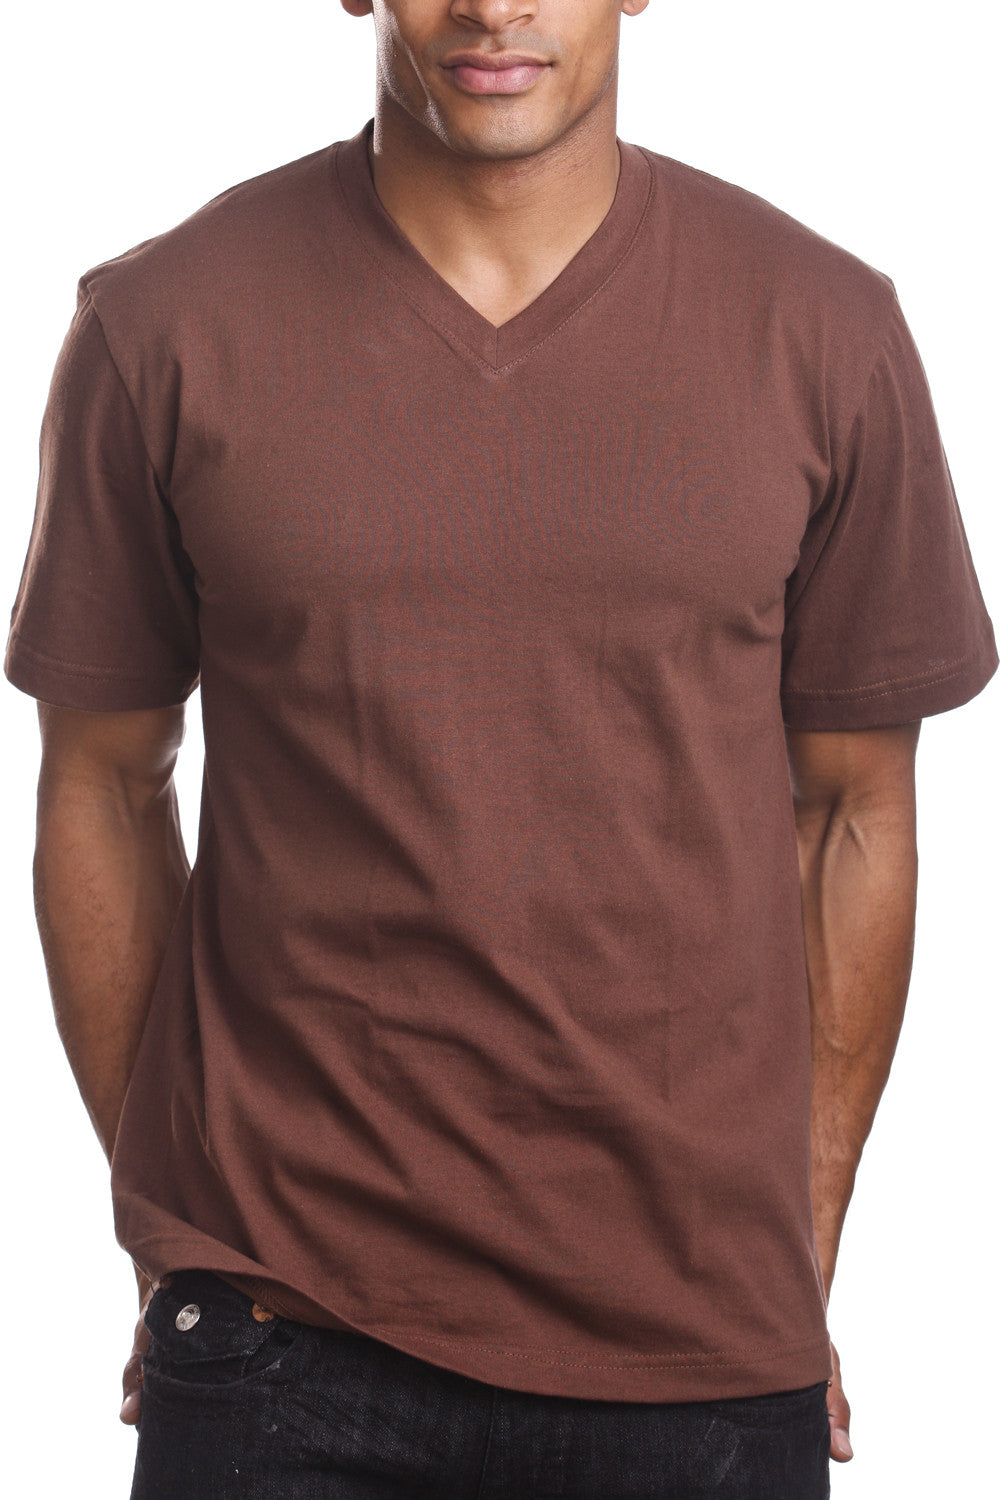 Mens Casual V-Neck T-Shirt Brown